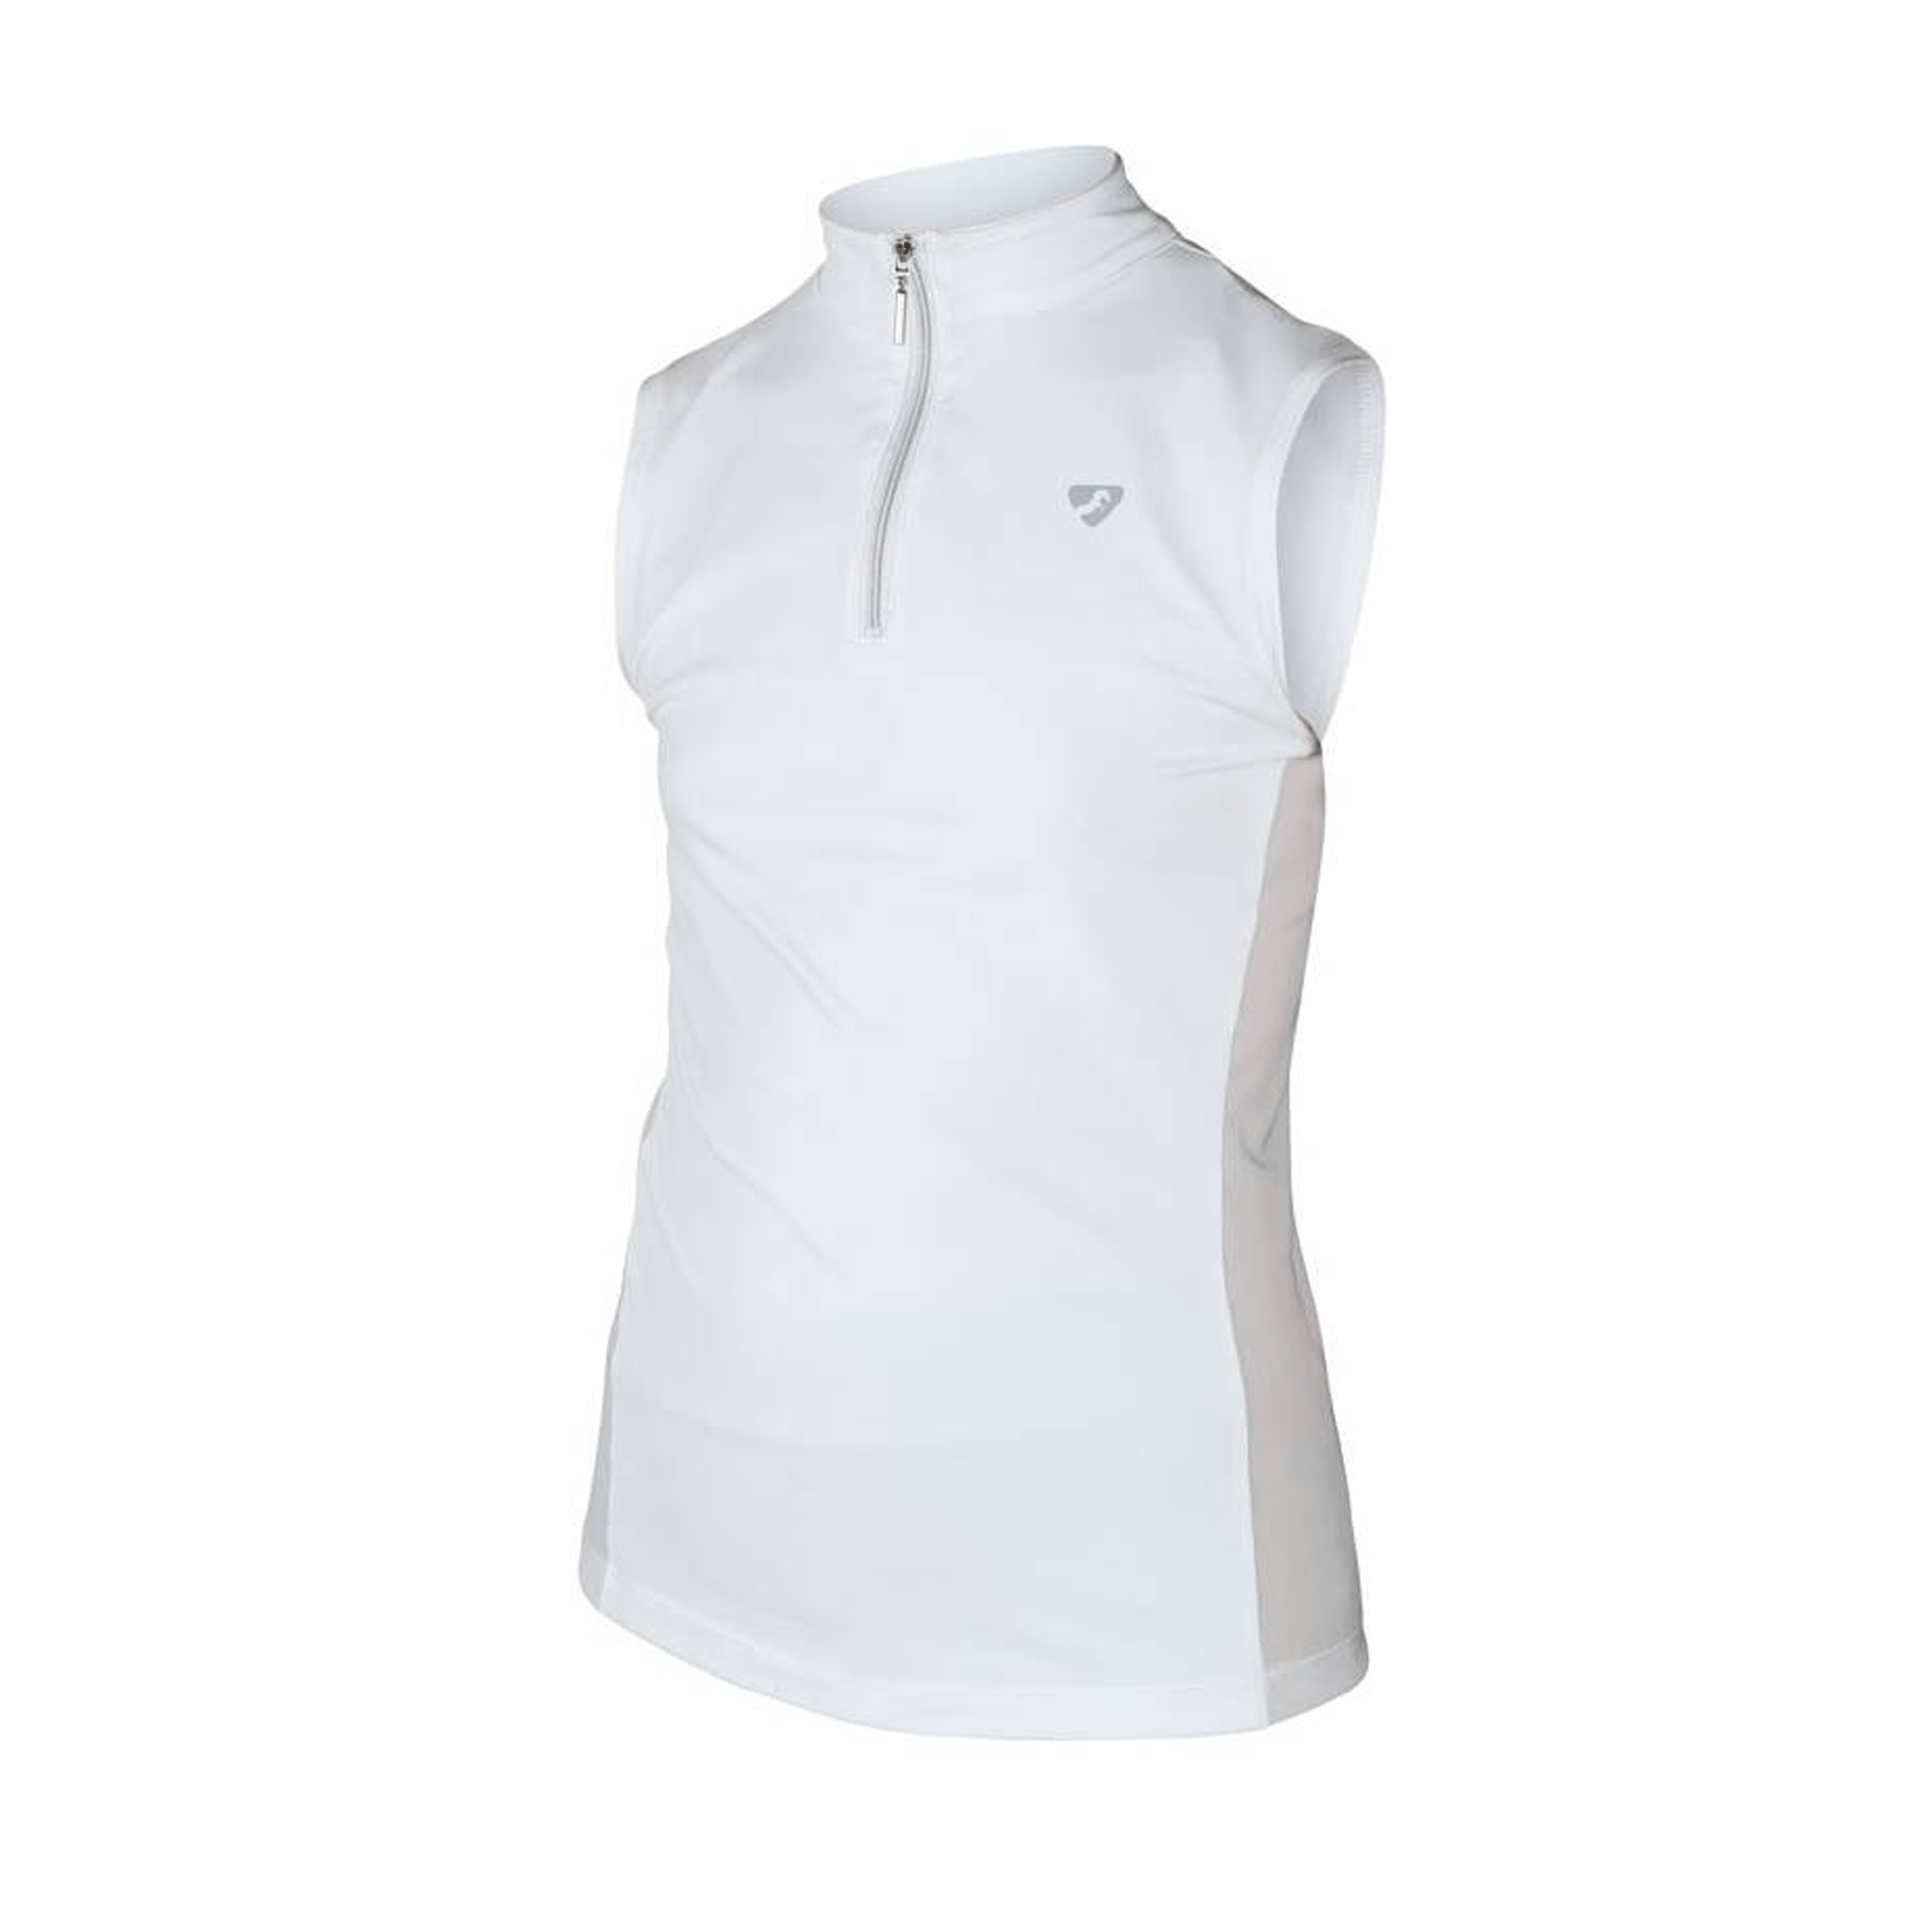 Shires Aubrion Girl's Elden Show Shirt White Front 8121M